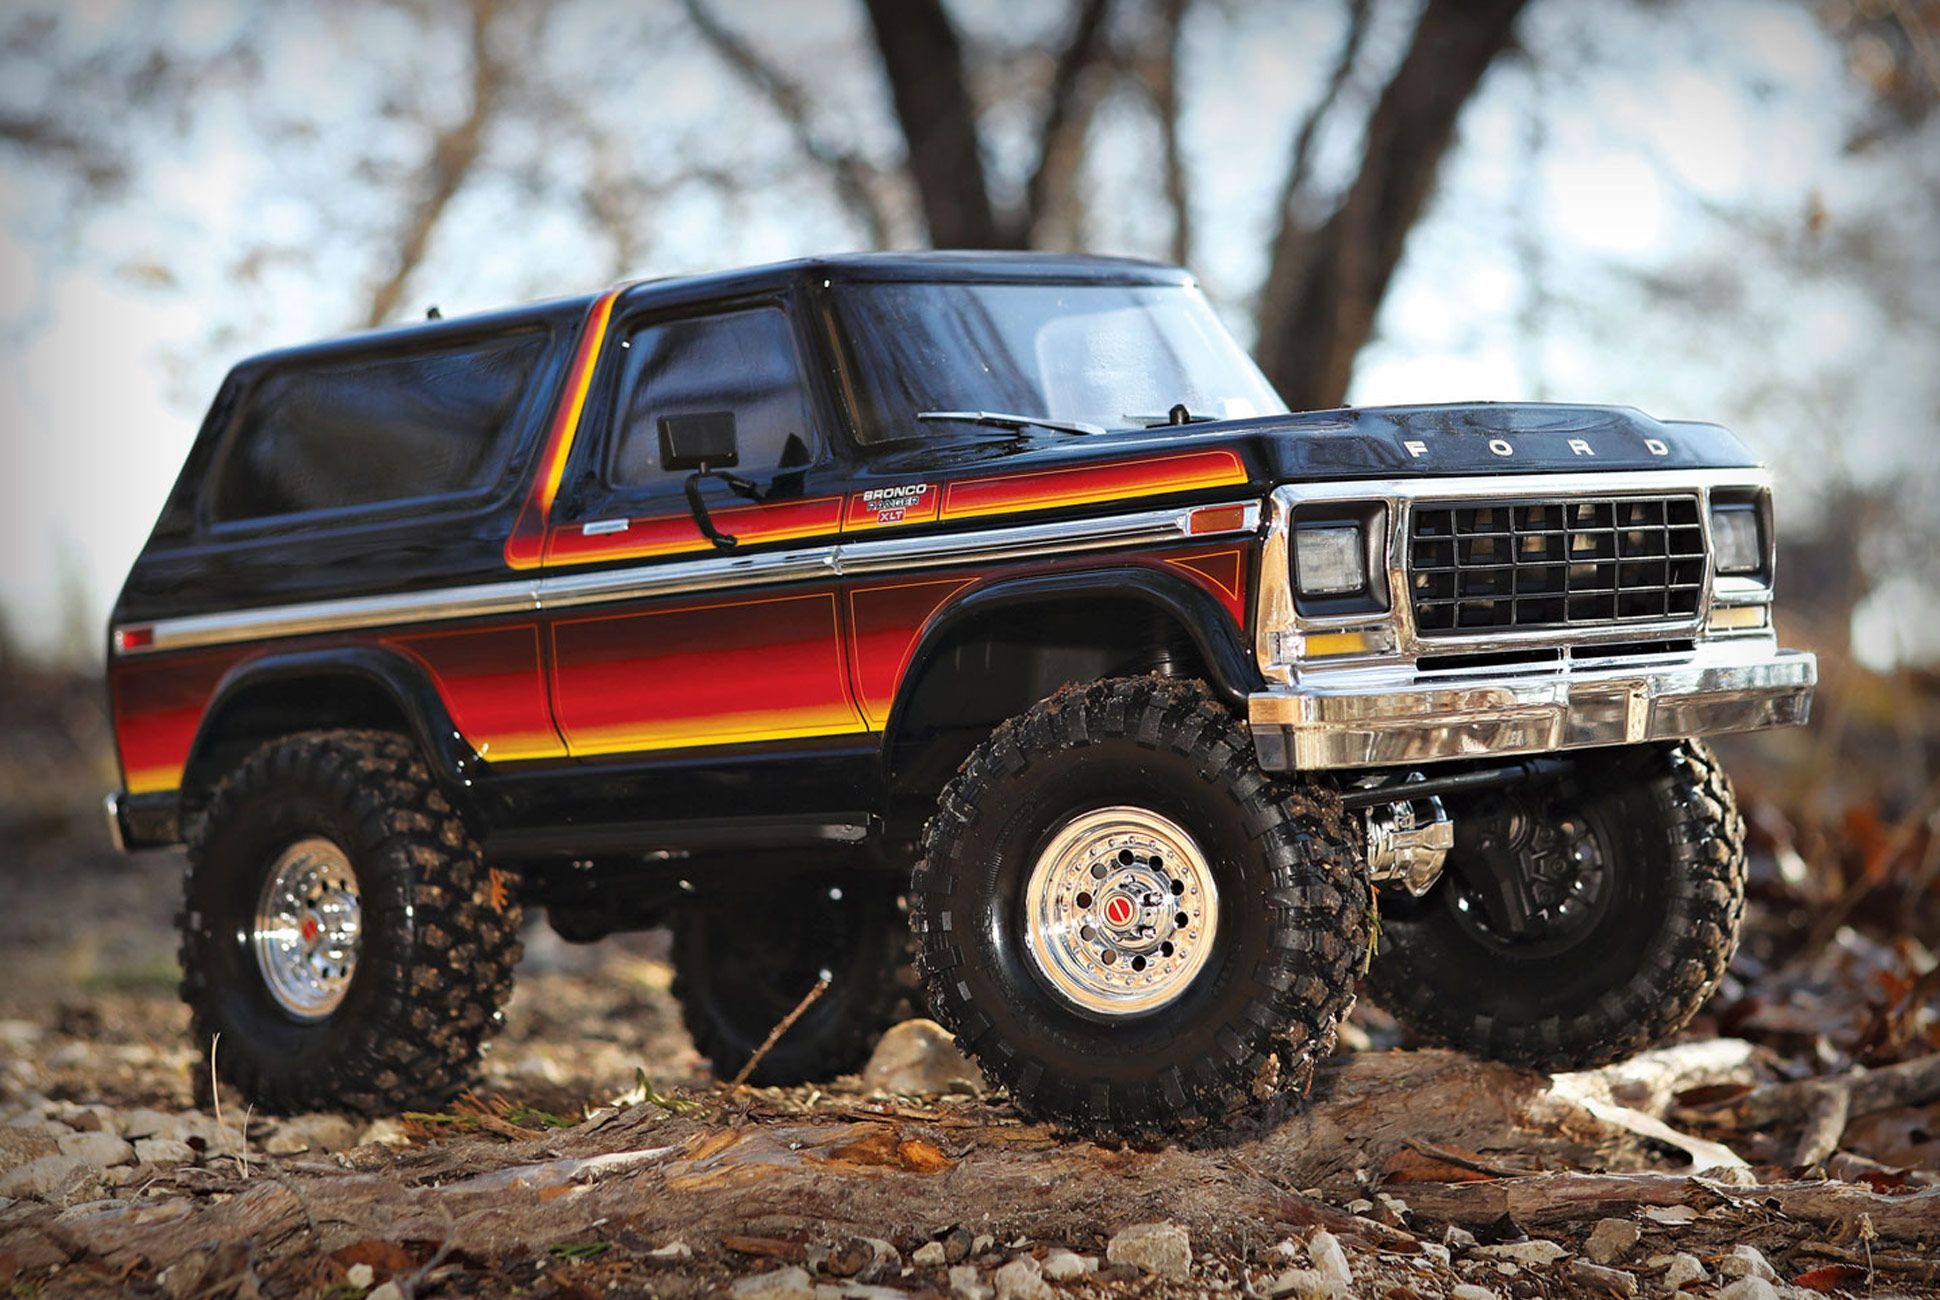 This Throwback Rc Bronco 4 4 Will Make You The Coolest Kid On The